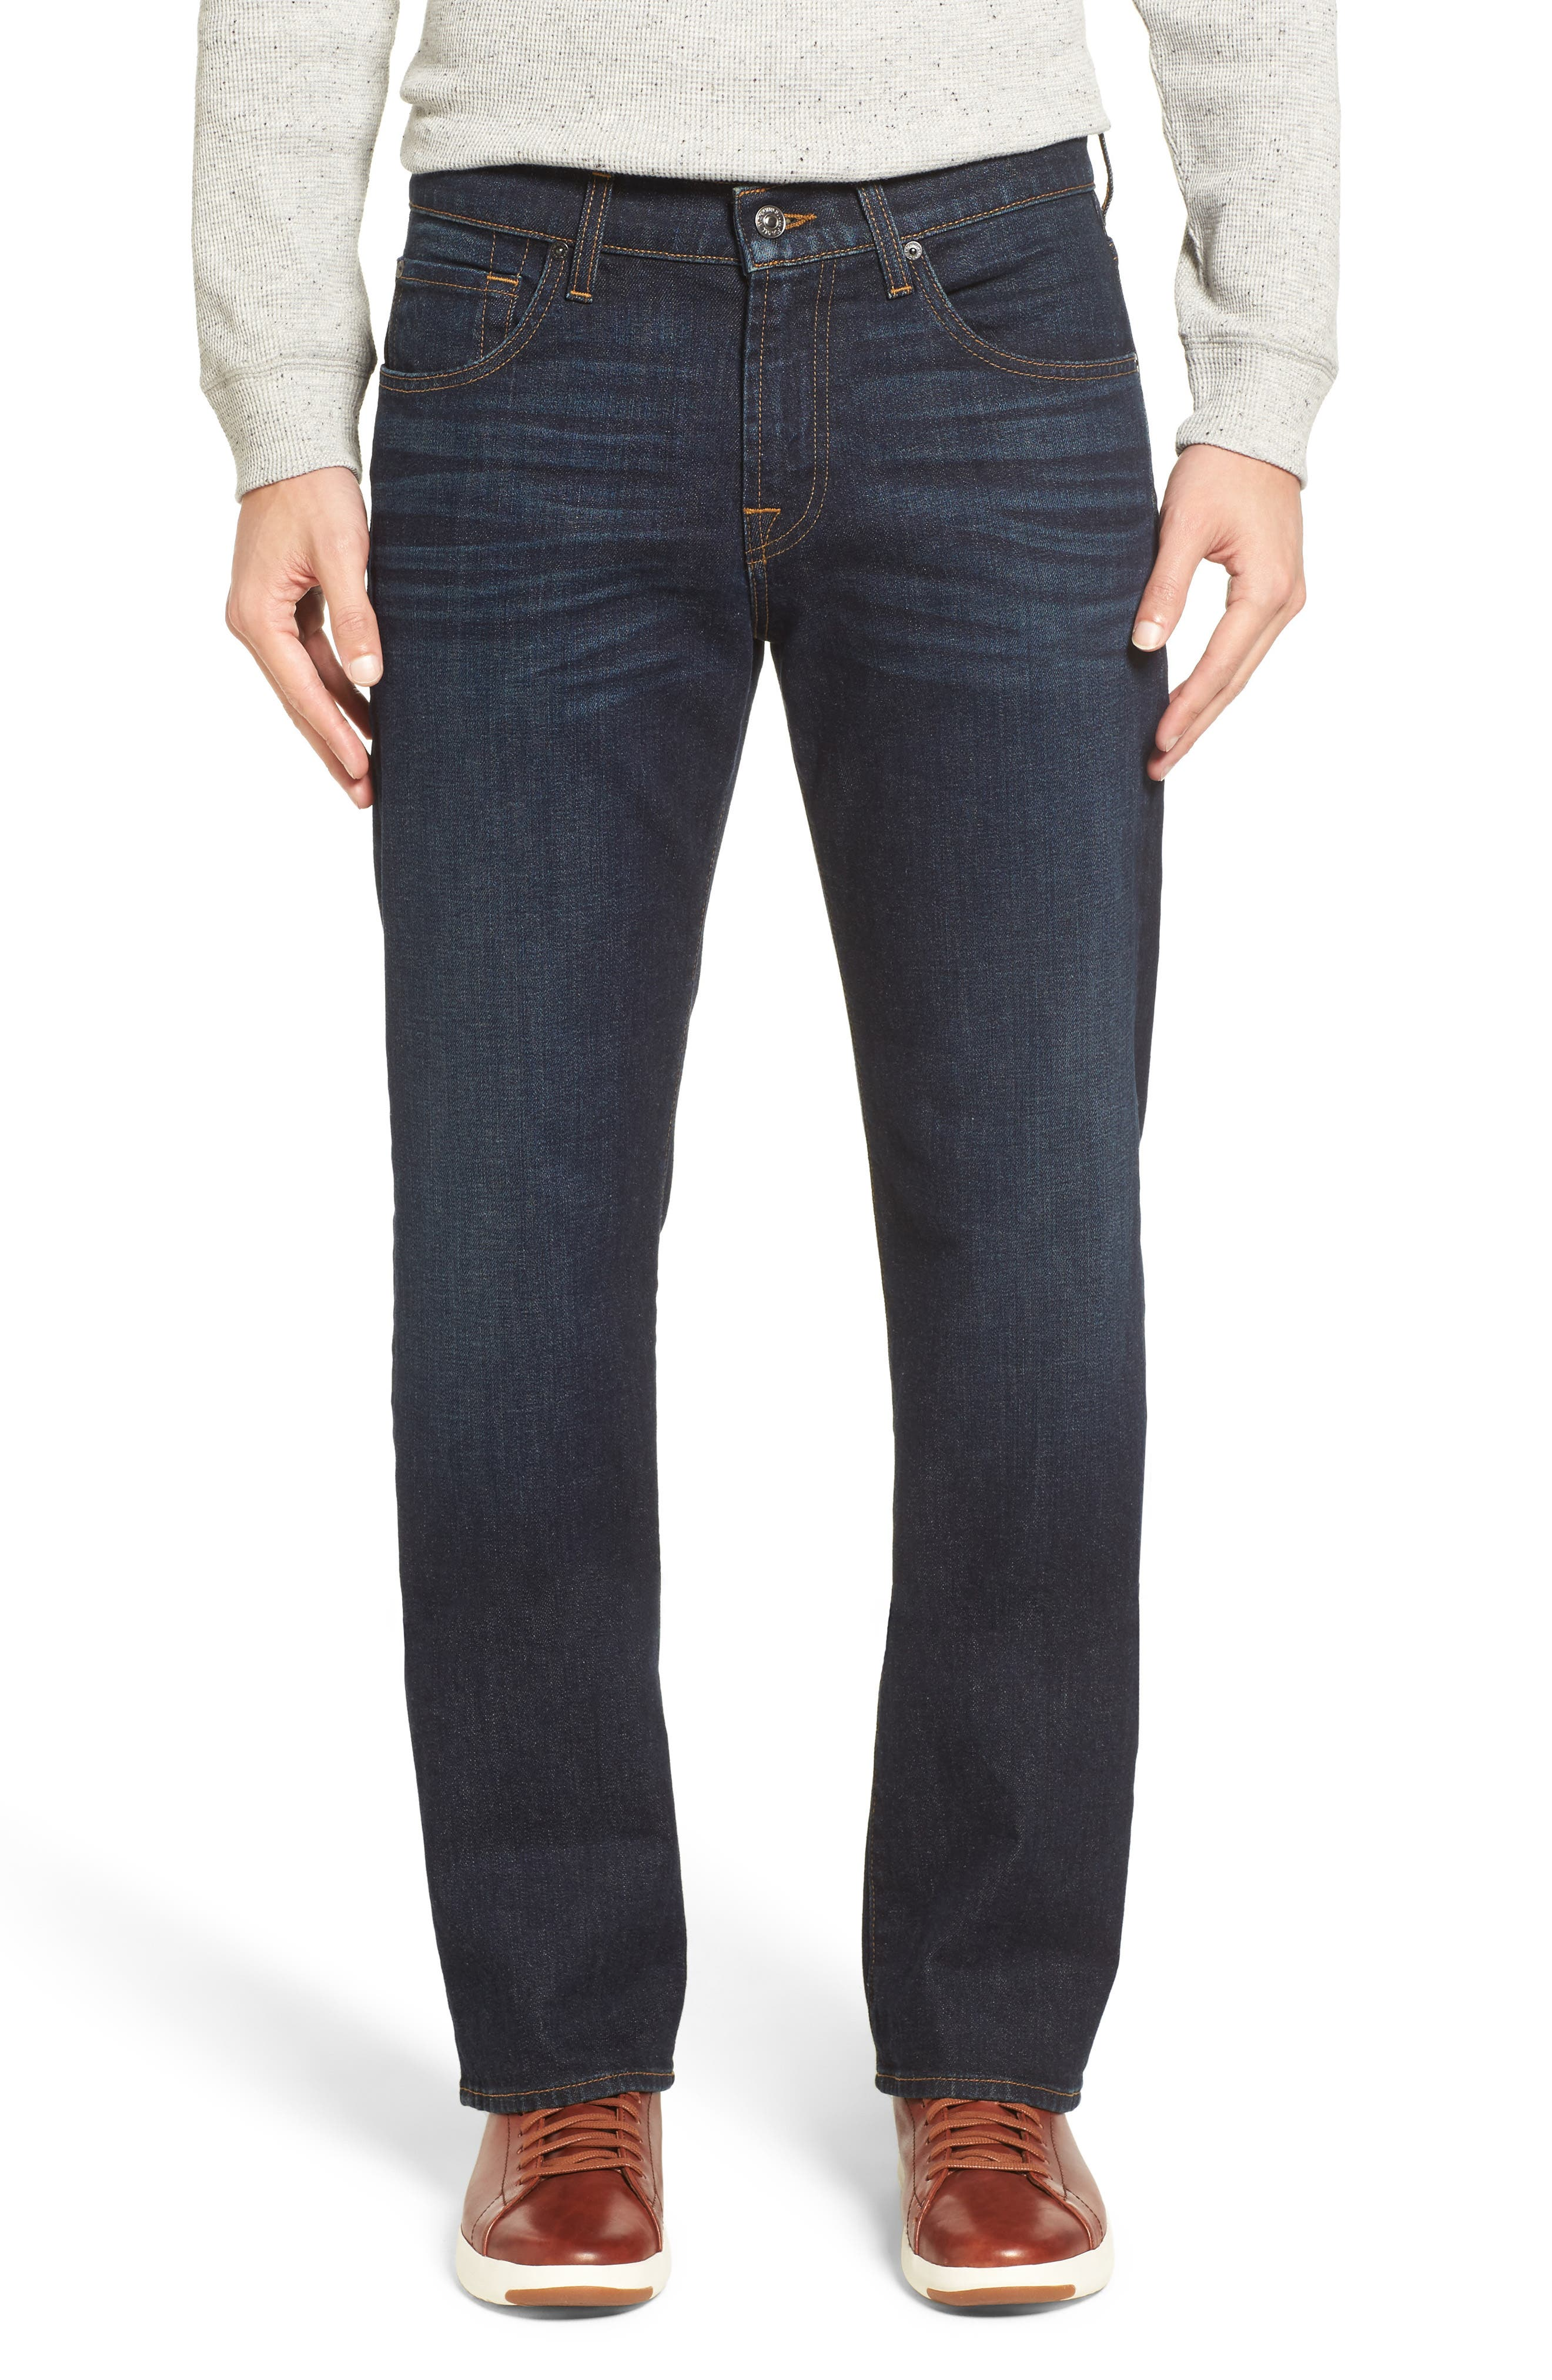 Austyn Relaxed Fit Jeans,                         Main,                         color, 402